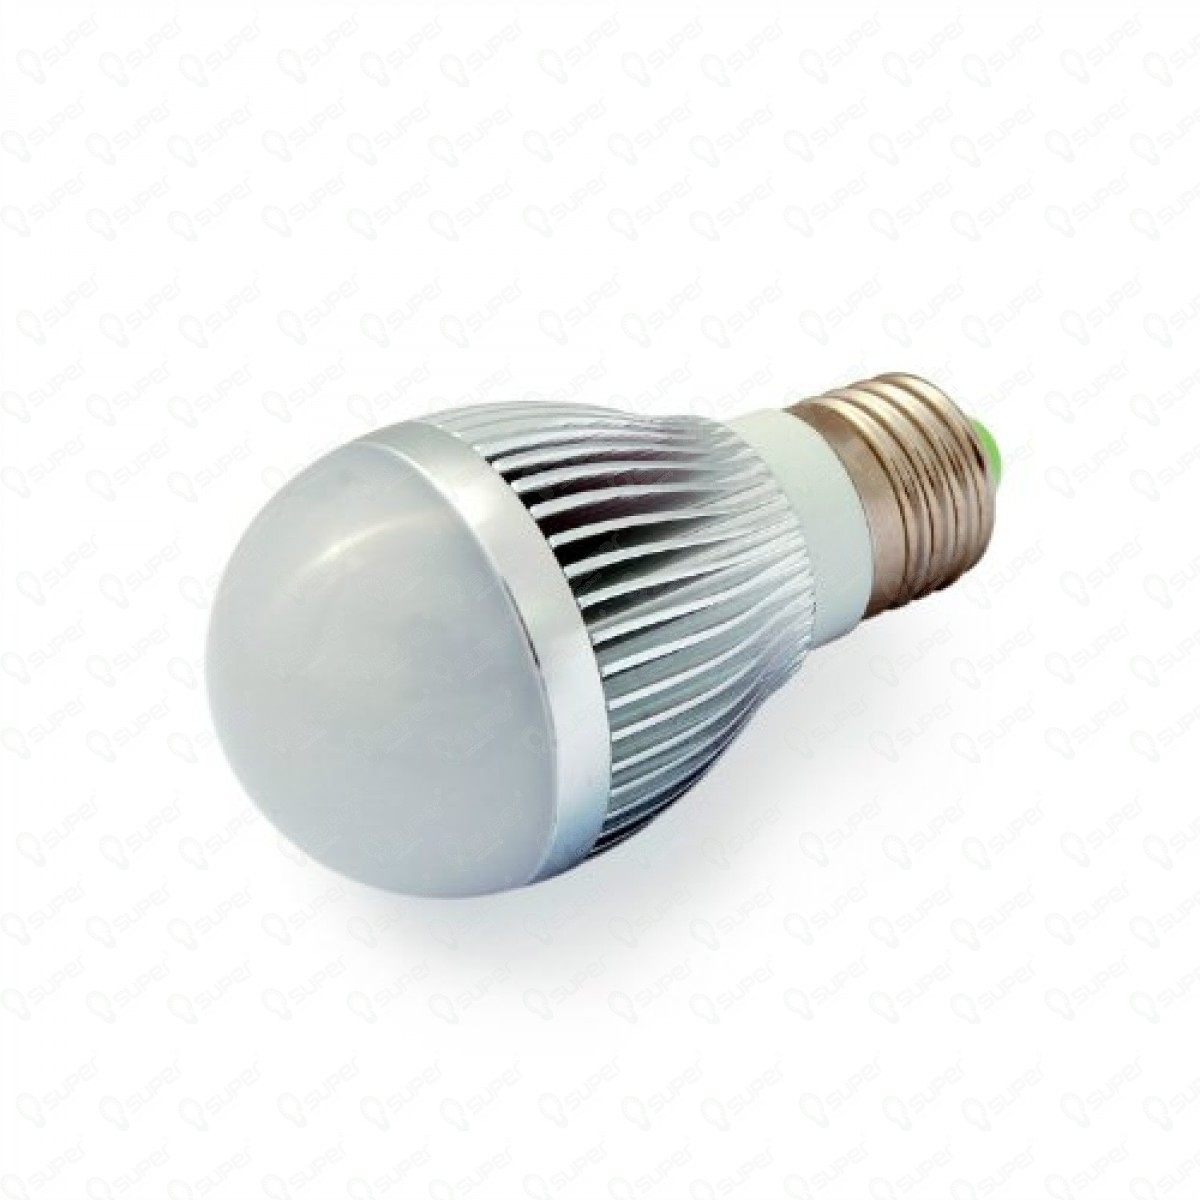 Popular 220 Volt Led Light Bulbs-Buy Cheap 220 Volt Led